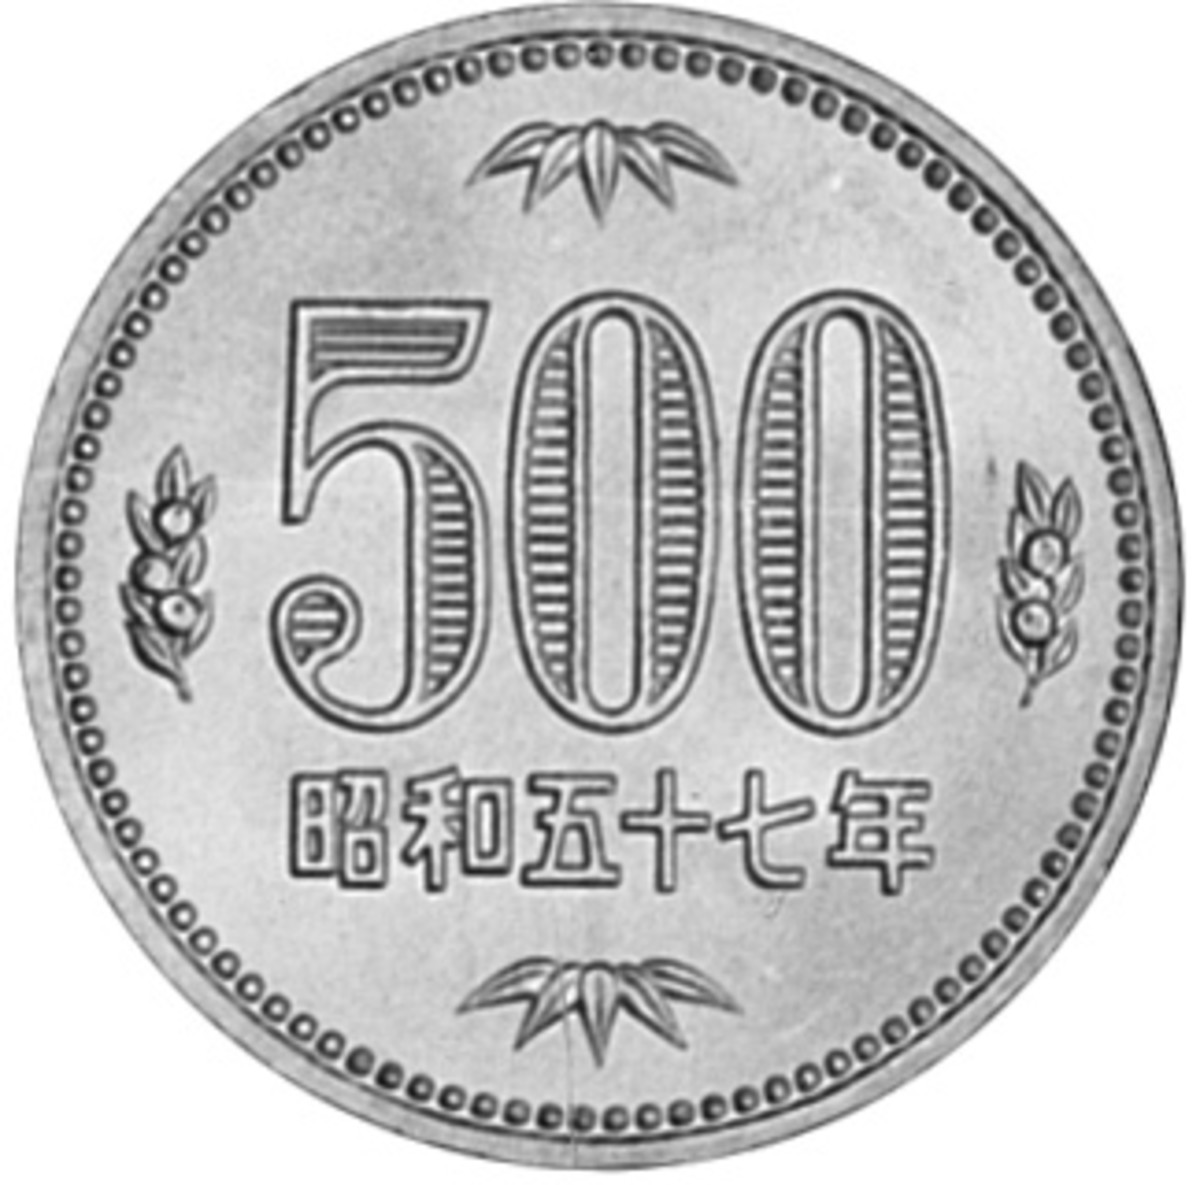 """The current 500 yen is made of Copper-Nickel. Its obverse shows the number """"500"""" surrounded by cherry blossoms. (Image courtesy of NGC.)"""